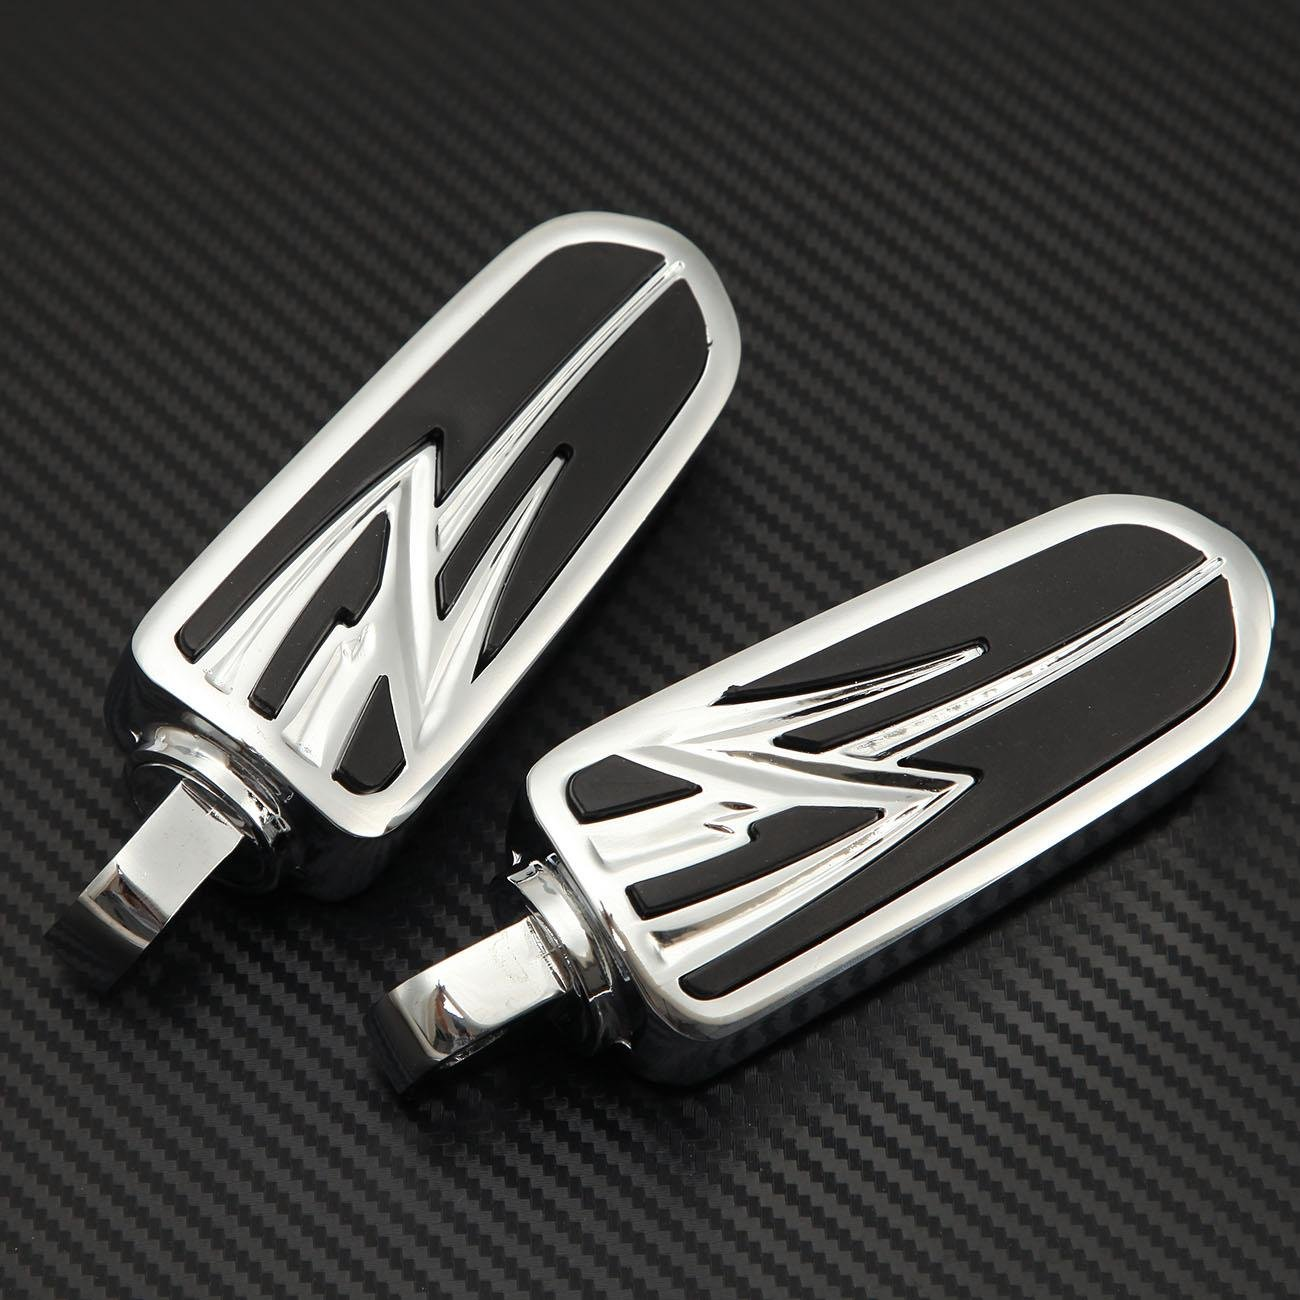 INNOGLOW Motorcycle Foot Pegs Anti Vibration Skidproof Front Rear Foot Rests Aluminum FootPeg Set Fit For Harley Davidson